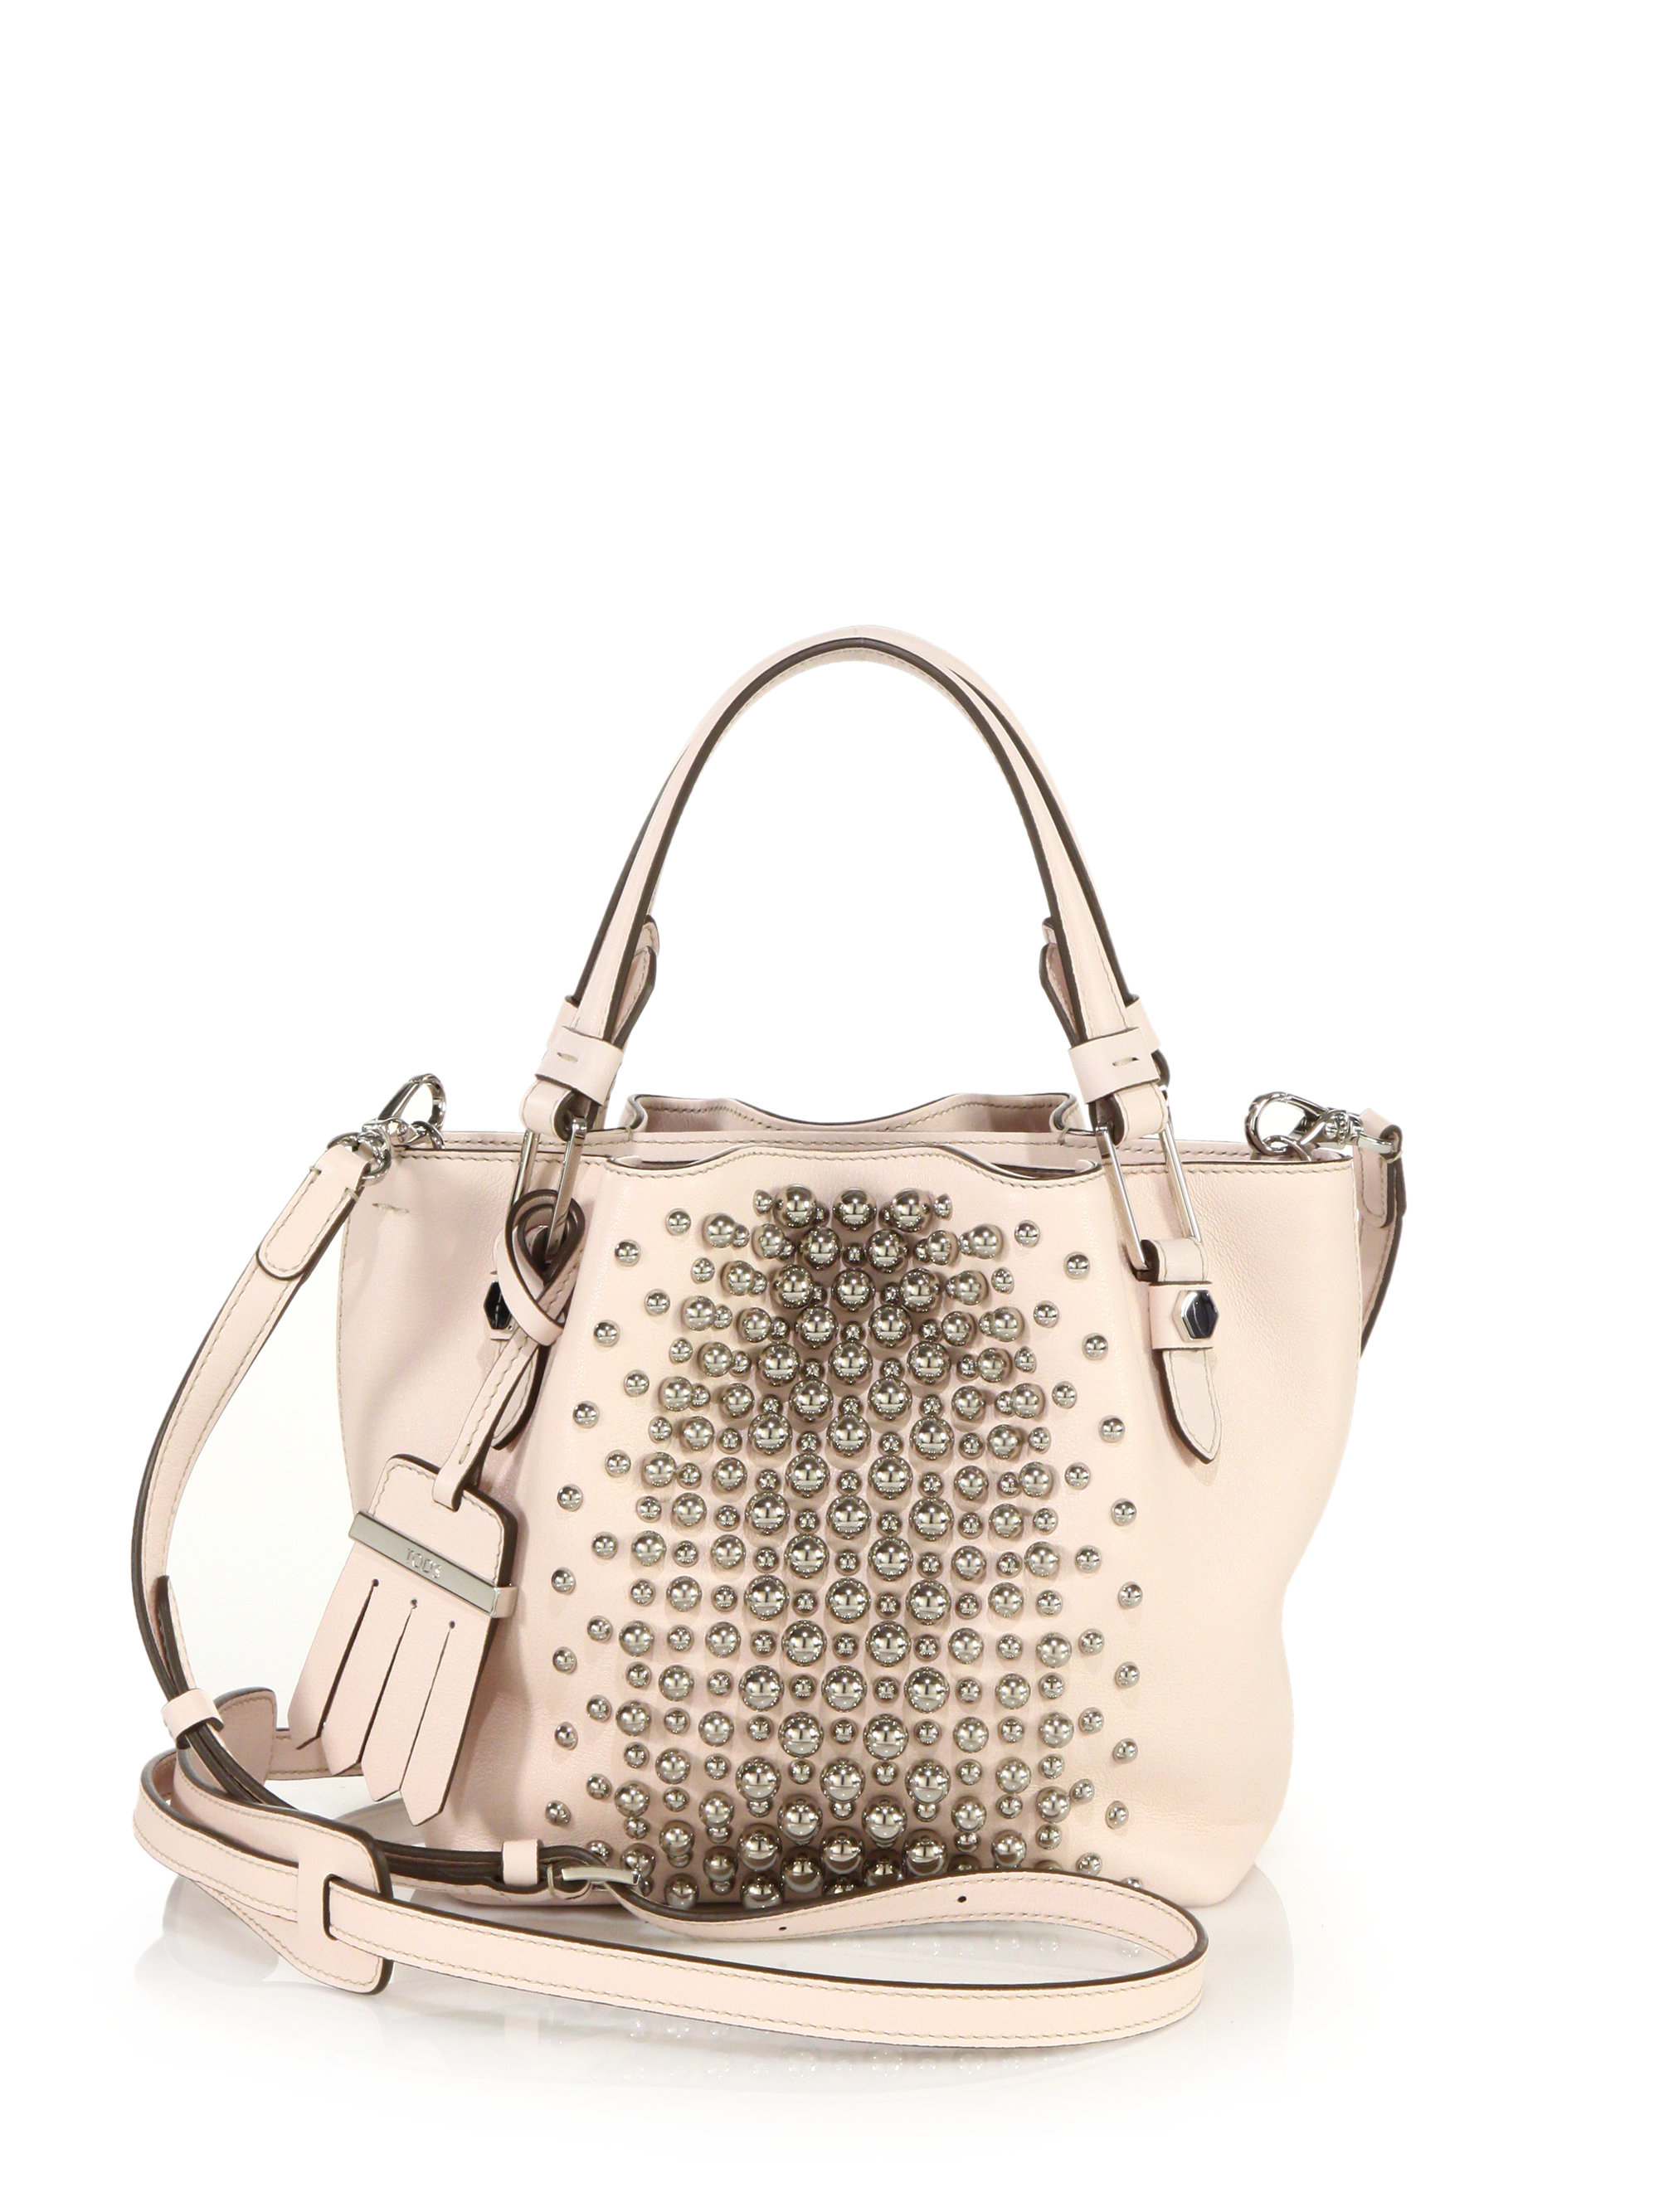 19c5a13f3552e Tod's Flower Micro Studded Leather Tote in Pink - Lyst